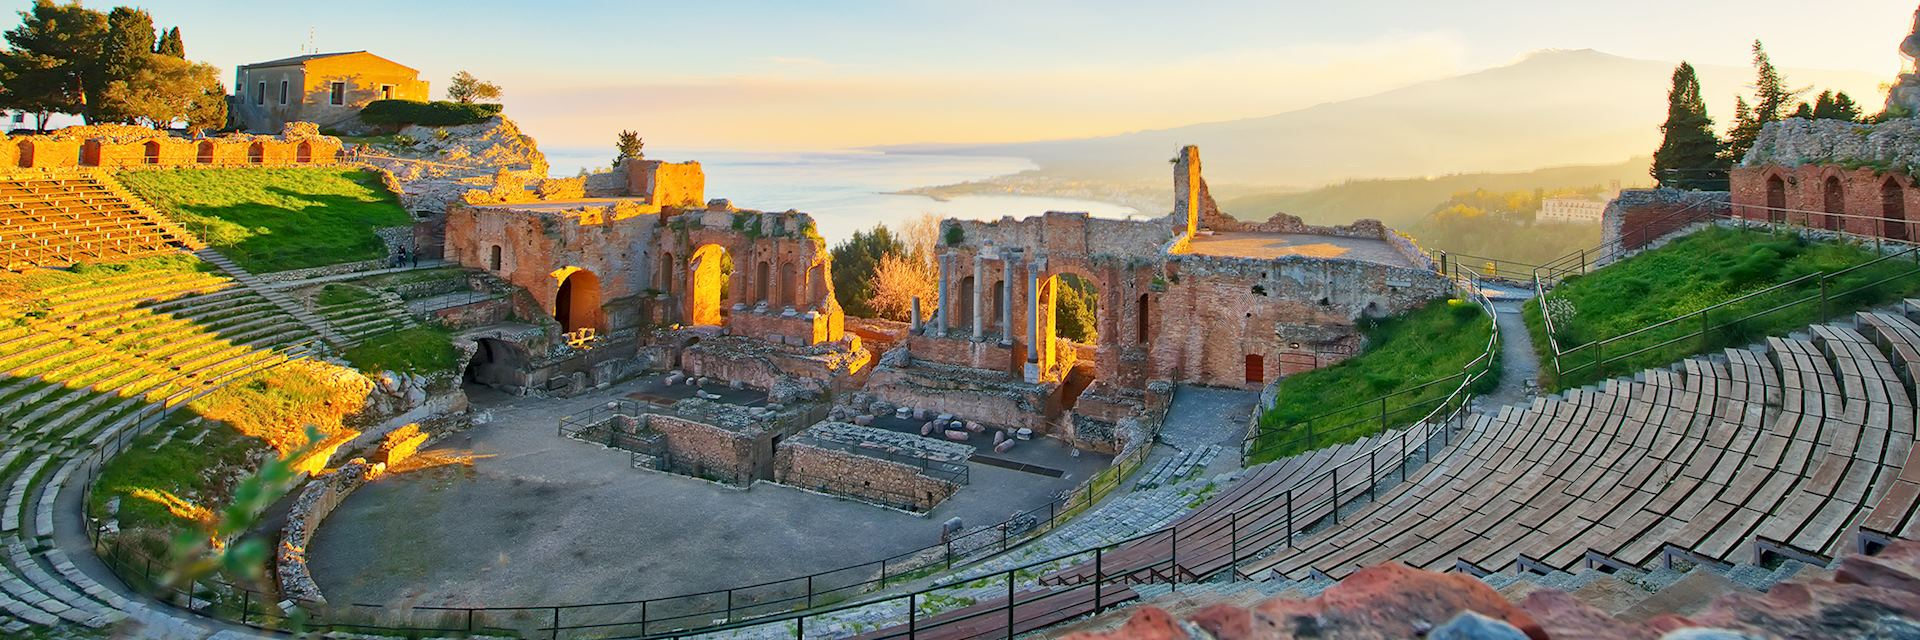 Ancient theatre of Taormina with Etna in the distance